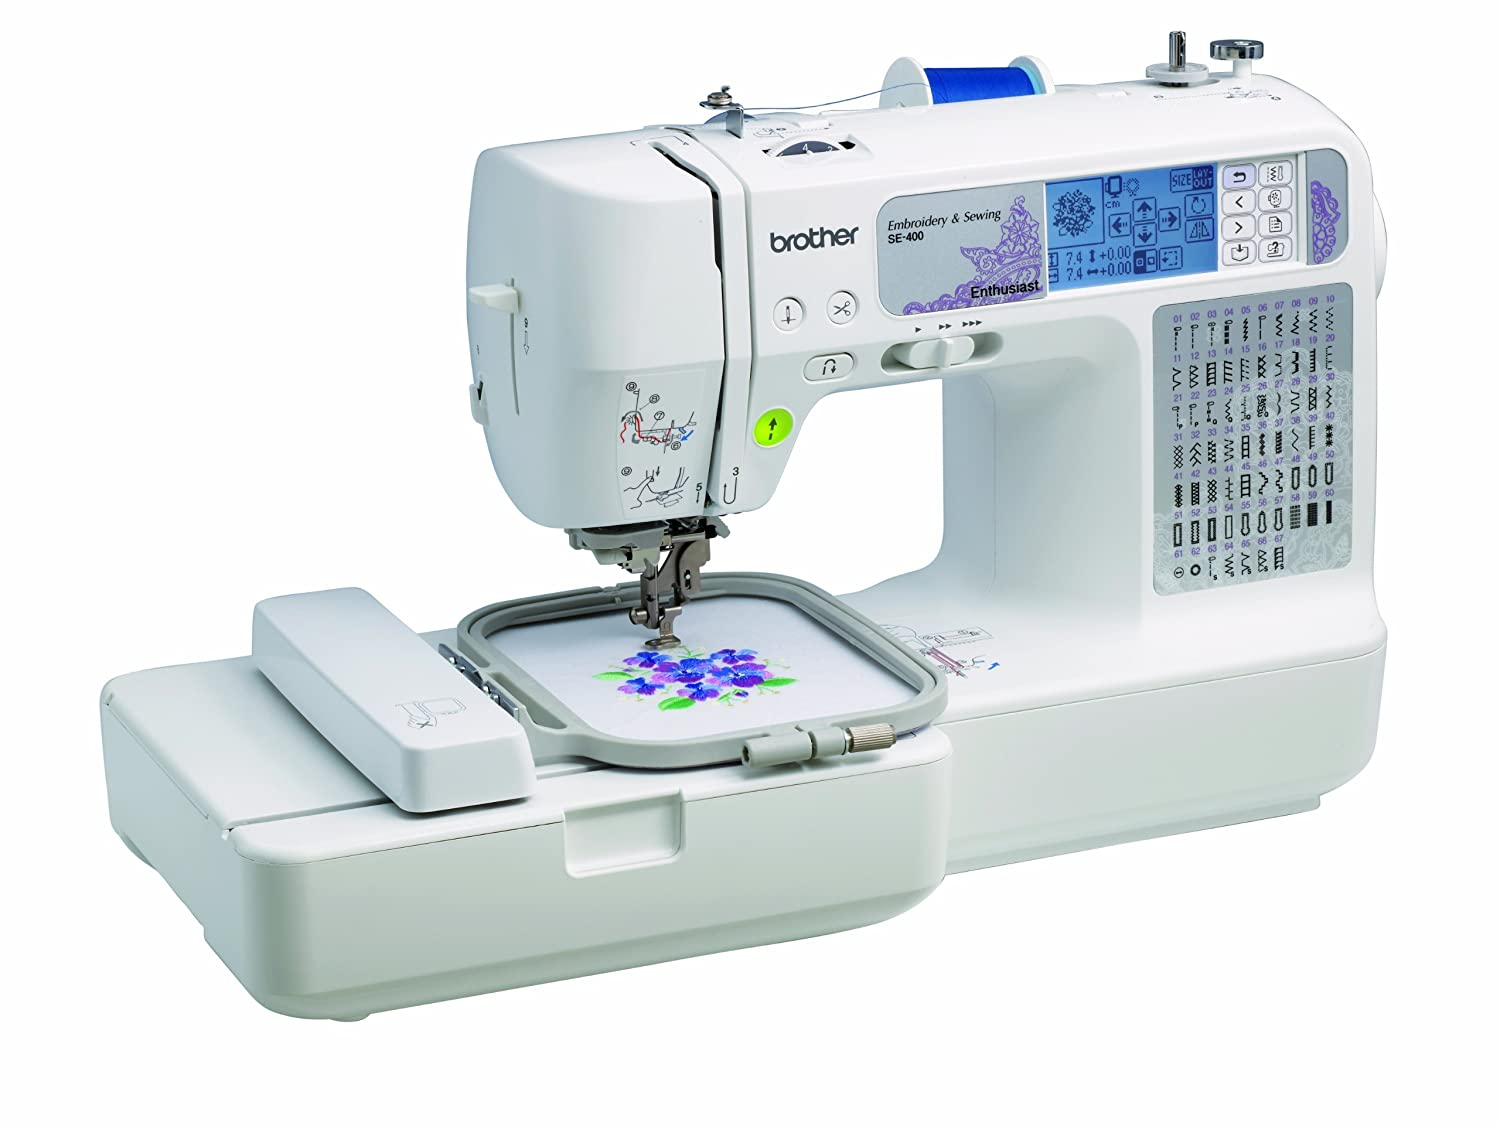 Sibling SE400 Combination Computerized Sewing Plus 4X4 Embroidery Machine Along With 67 Built-in Stitching